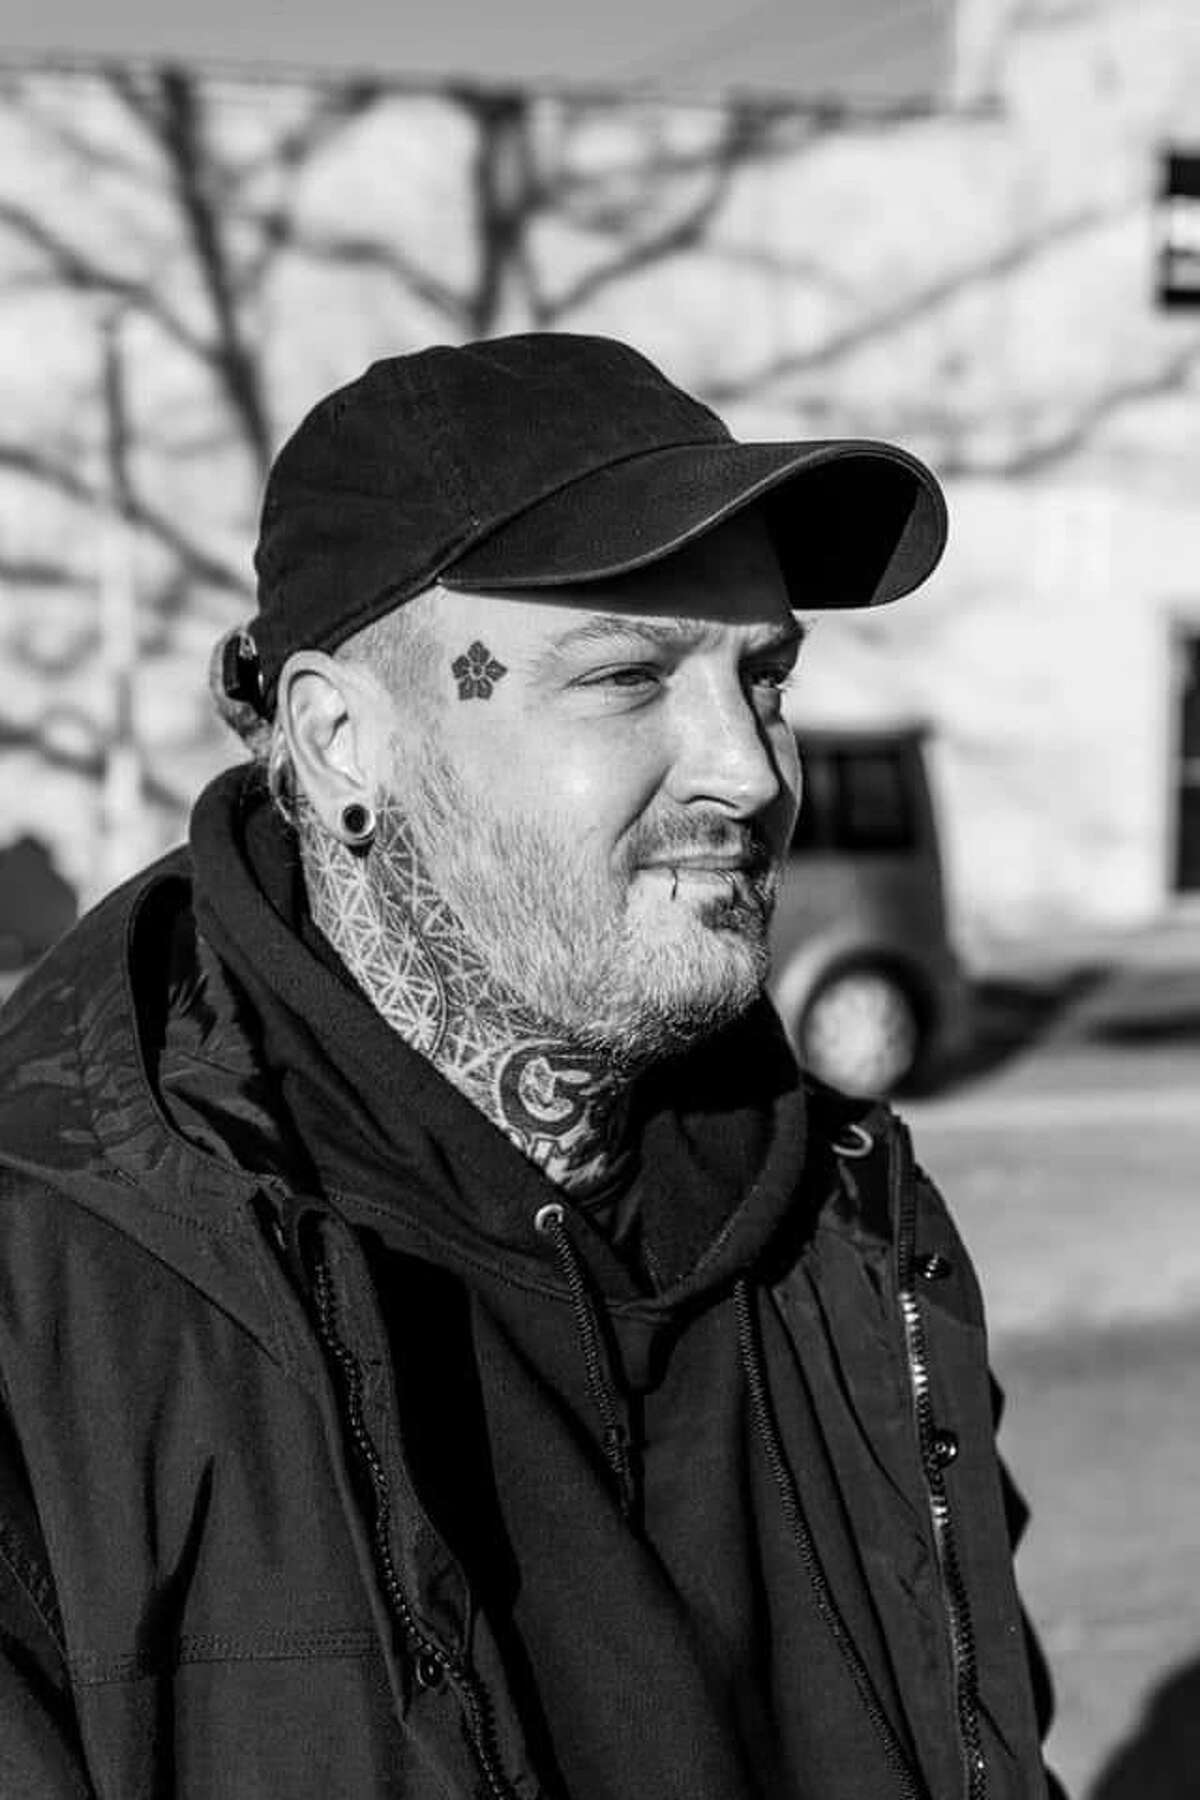 Jason Crowell dedicated himself to helping the homeless and addicted in New Haven.